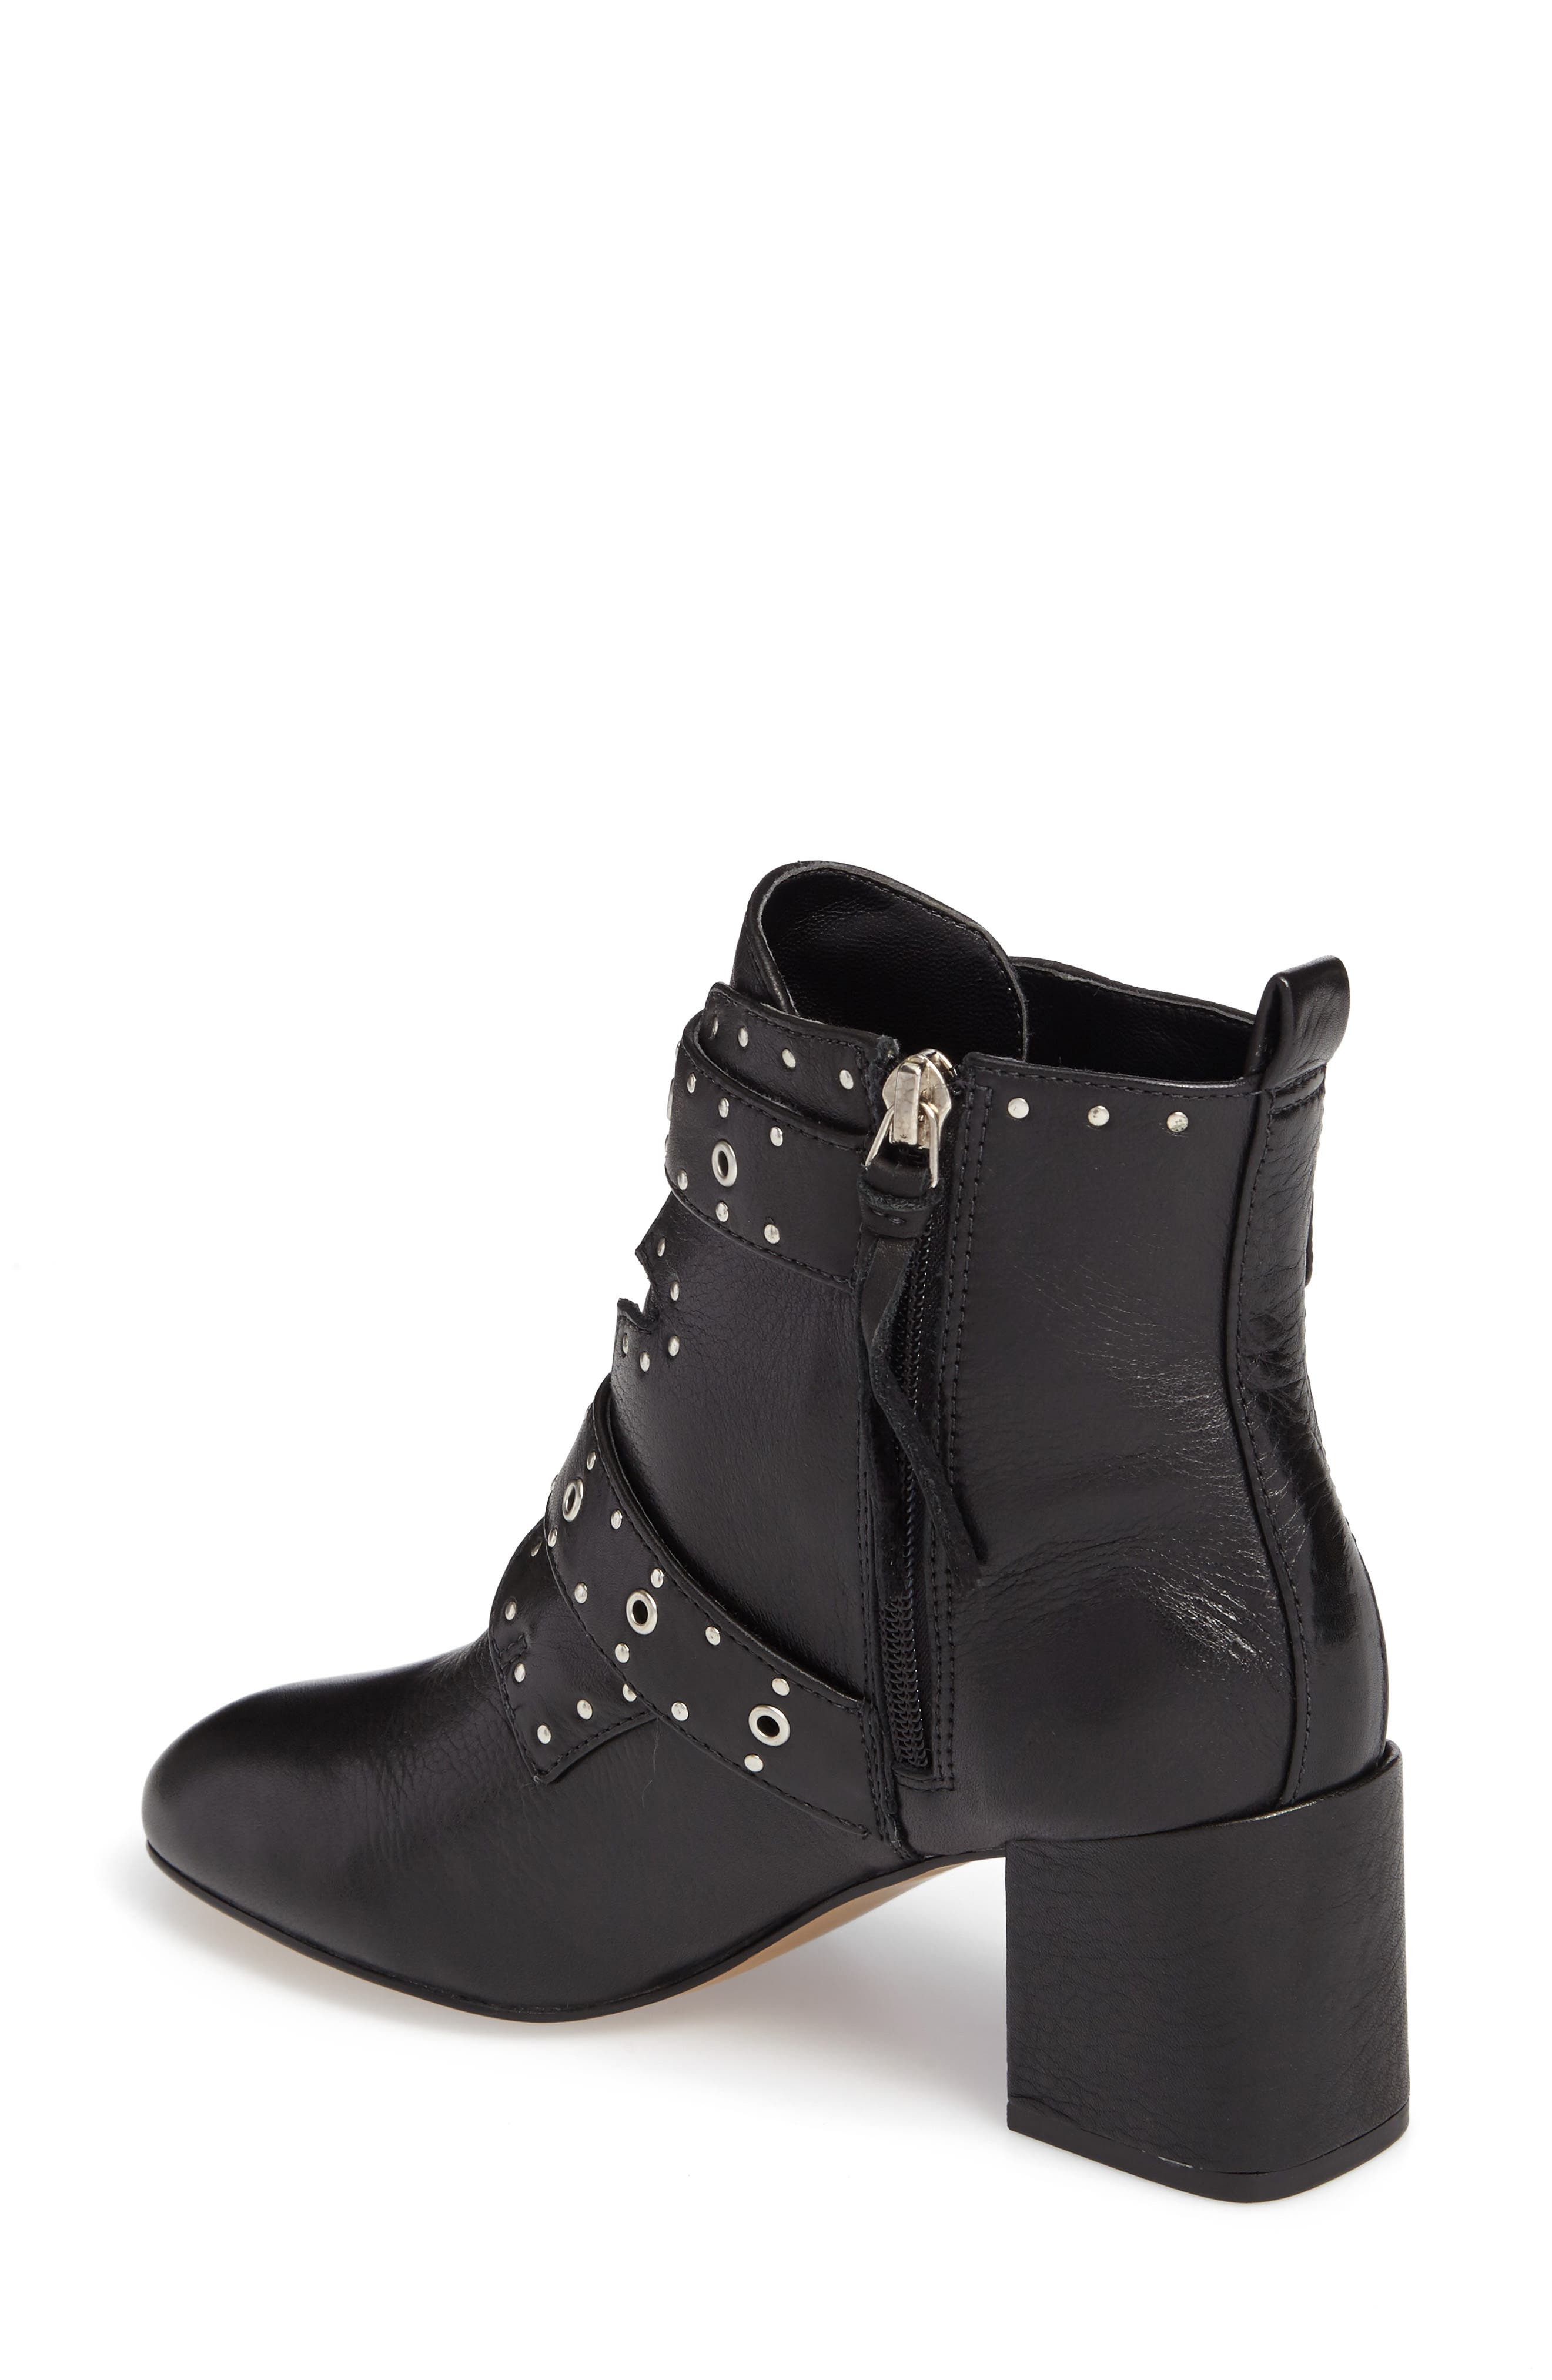 Logan Studded Bootie,                             Alternate thumbnail 2, color,                             001